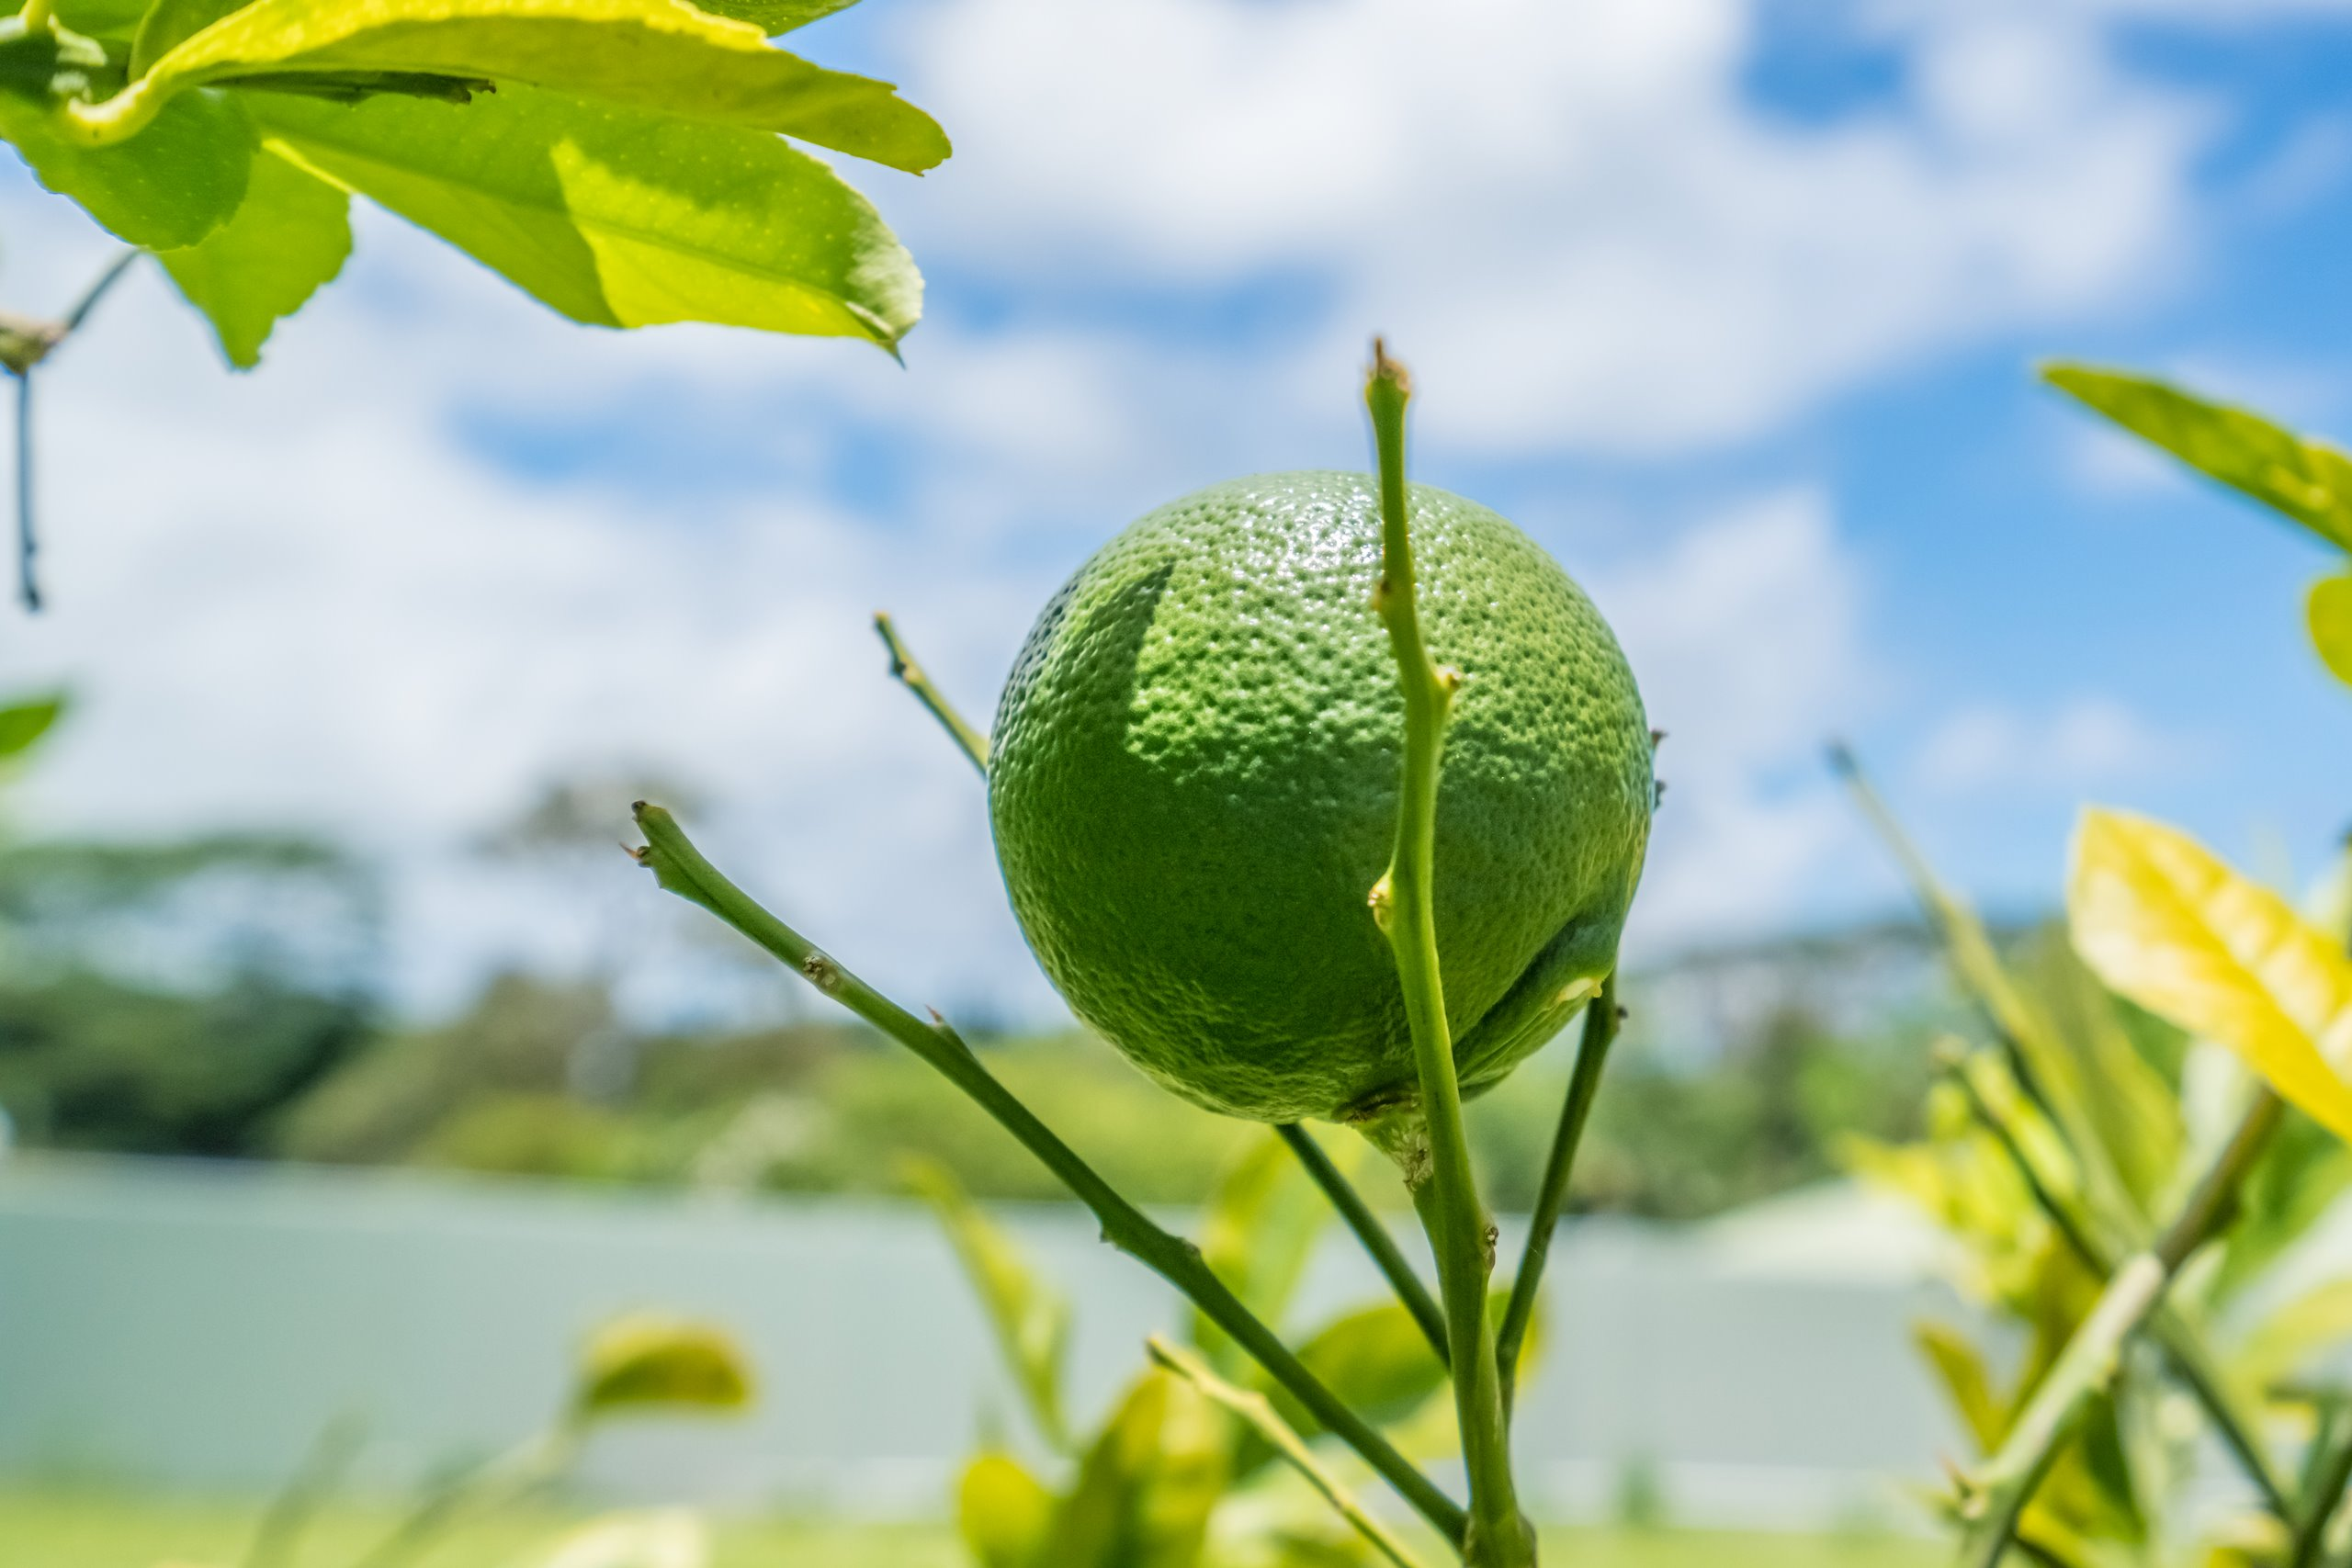 Citrus and edible fruit trees throughout the yard